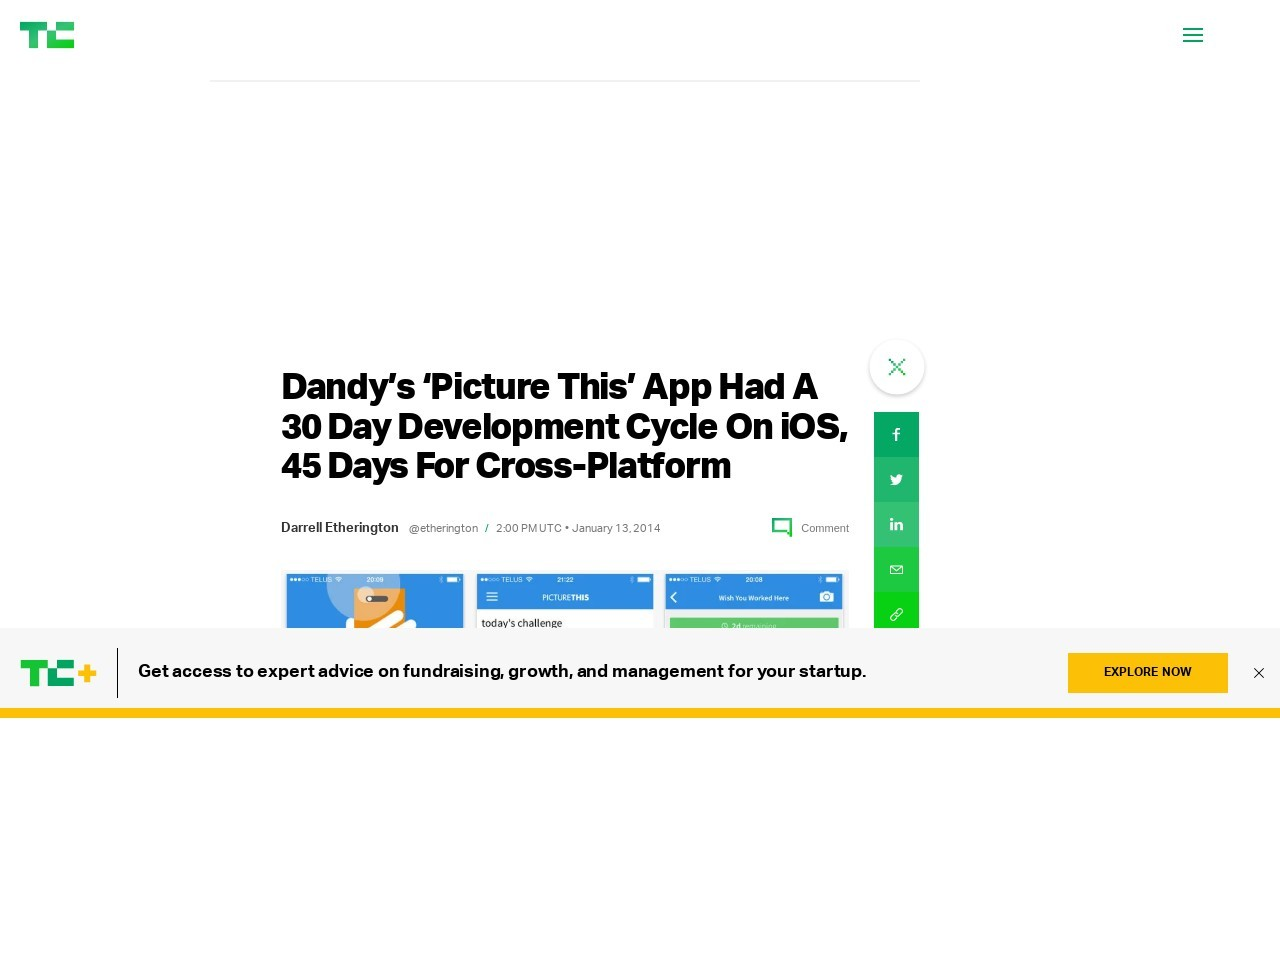 Dandy's 'Picture This' App Had A 30 Day Development Cycle On iOS …